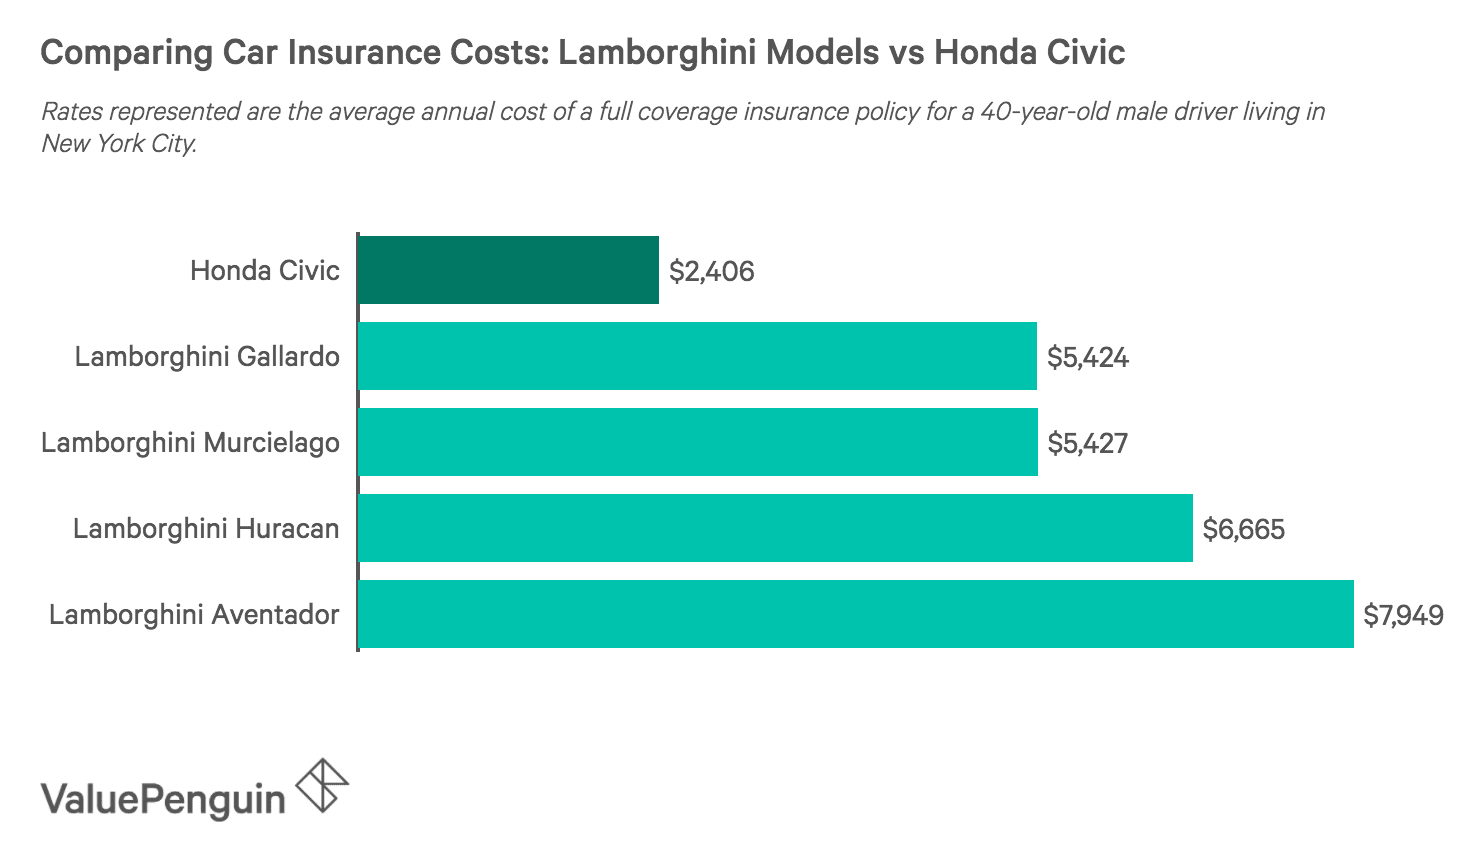 How Much Does Lamborghini Insurance Cost Valuepenguin